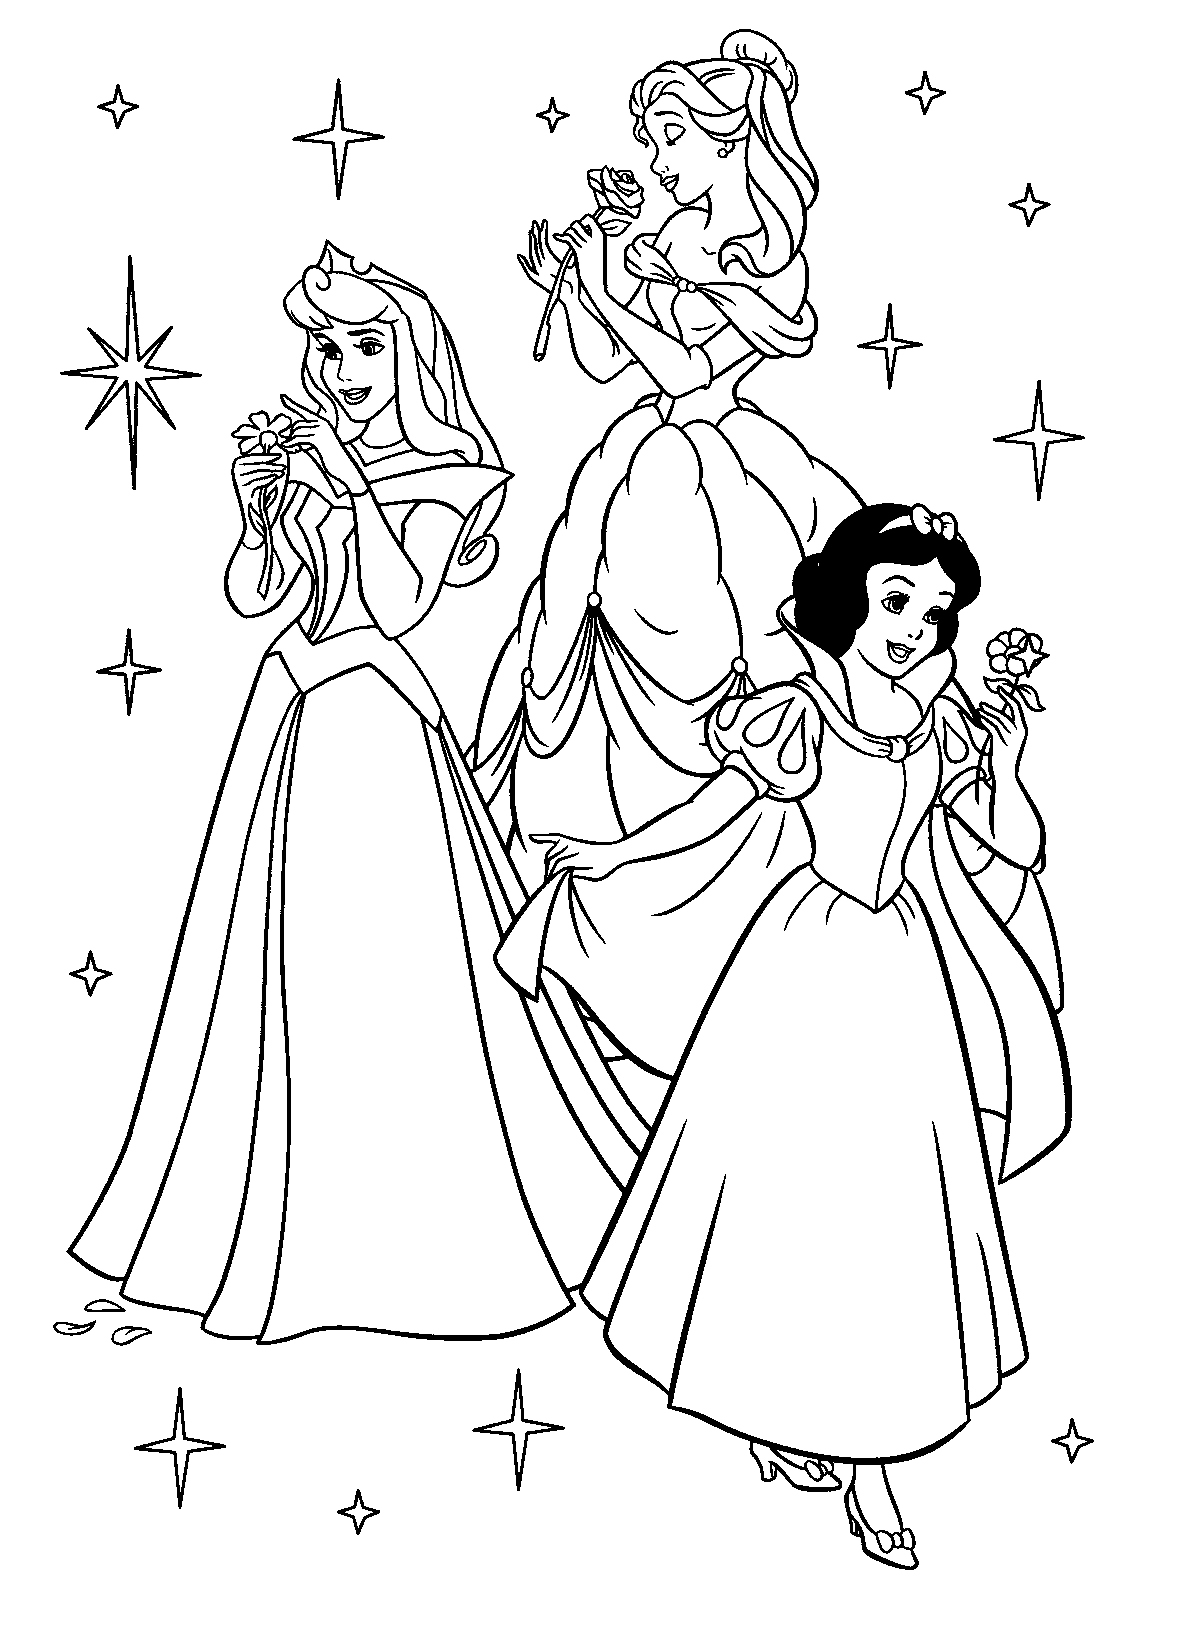 Colouring pages to print disney - Disney Princesses Coloring Pages